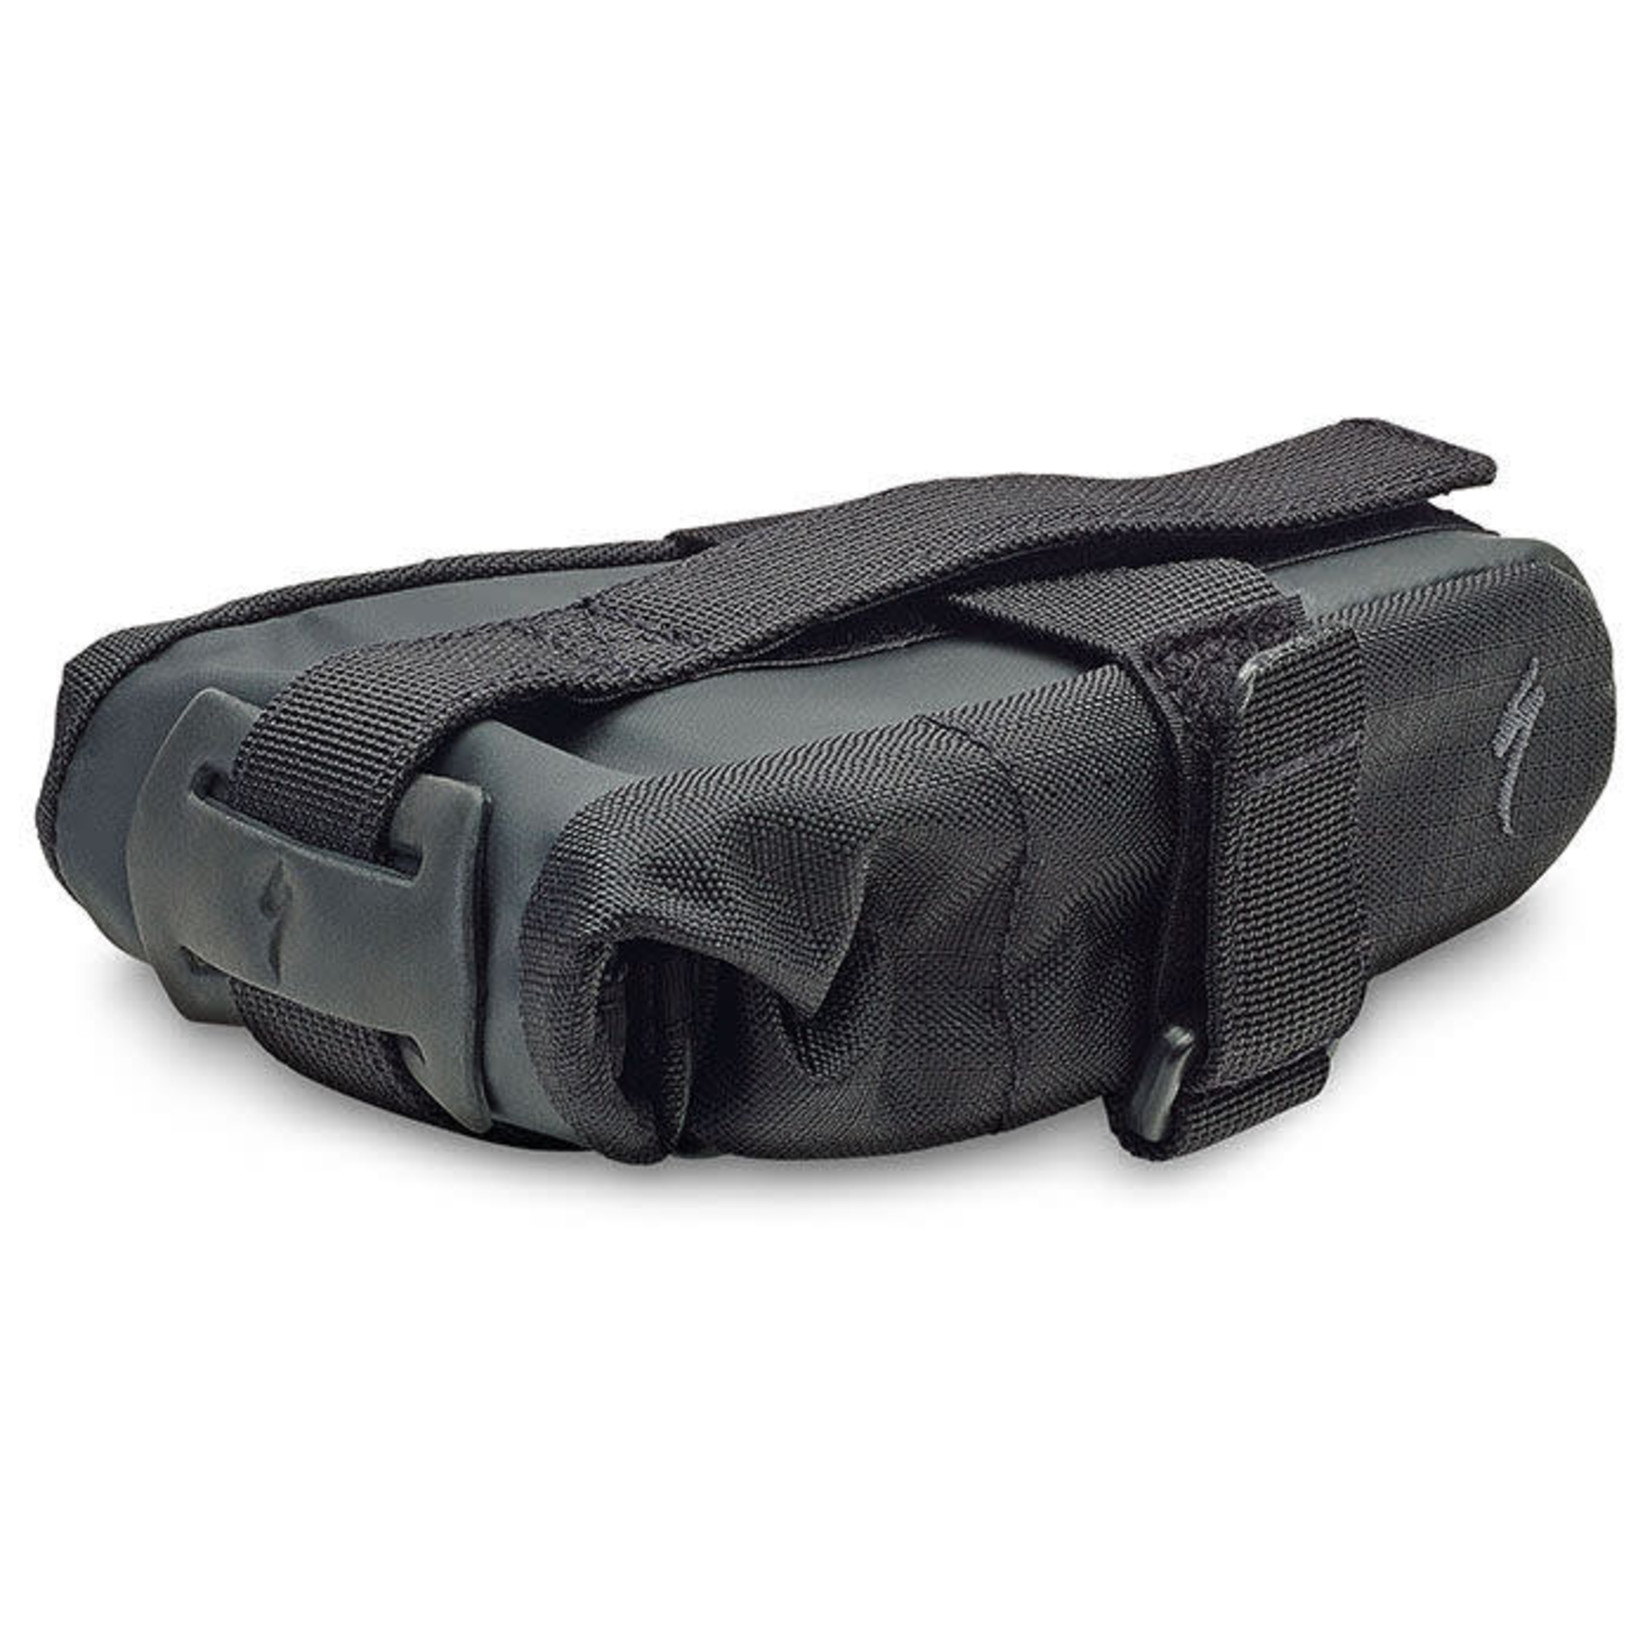 Specialized Specialized Seat Pack XL Black